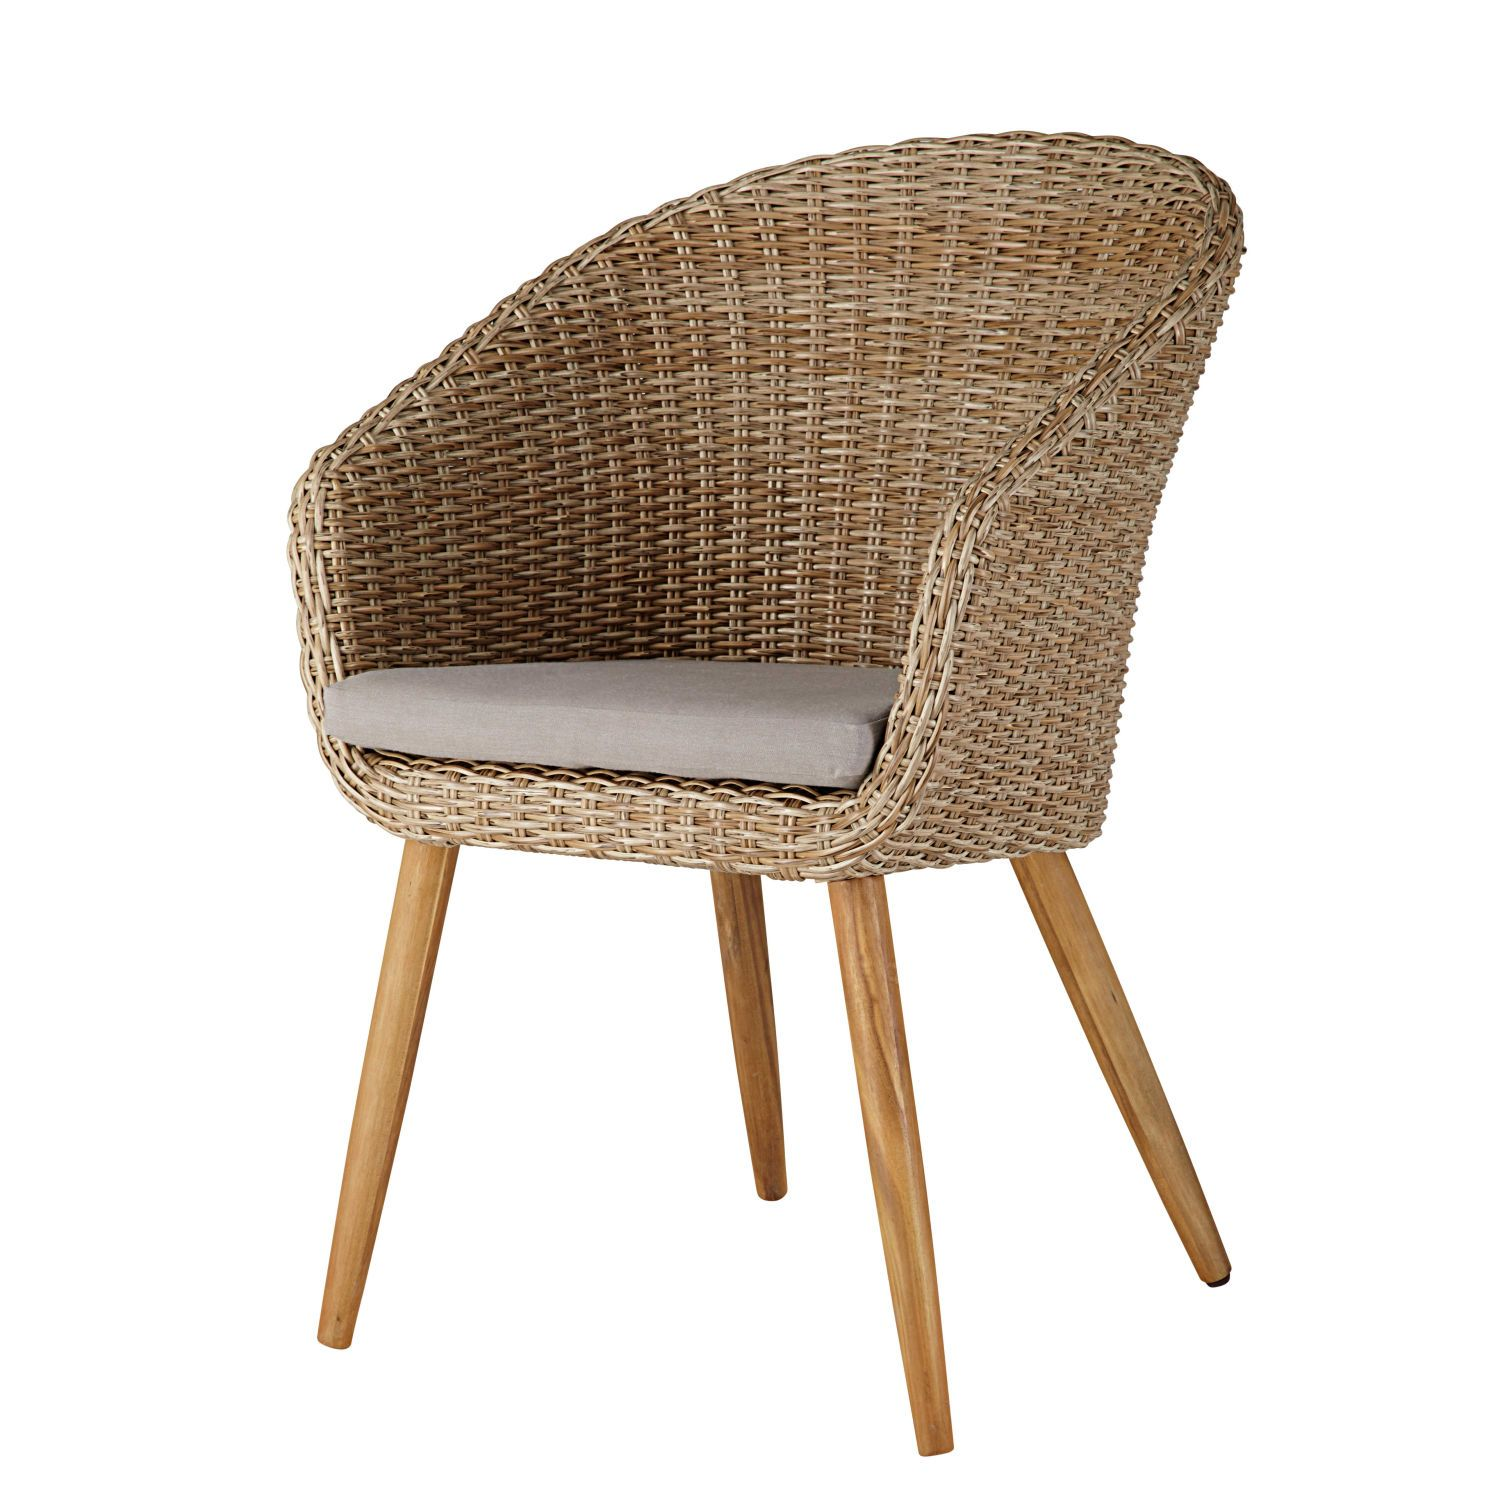 Garden Chair In Resin Wicker And Solid Acacia 2019